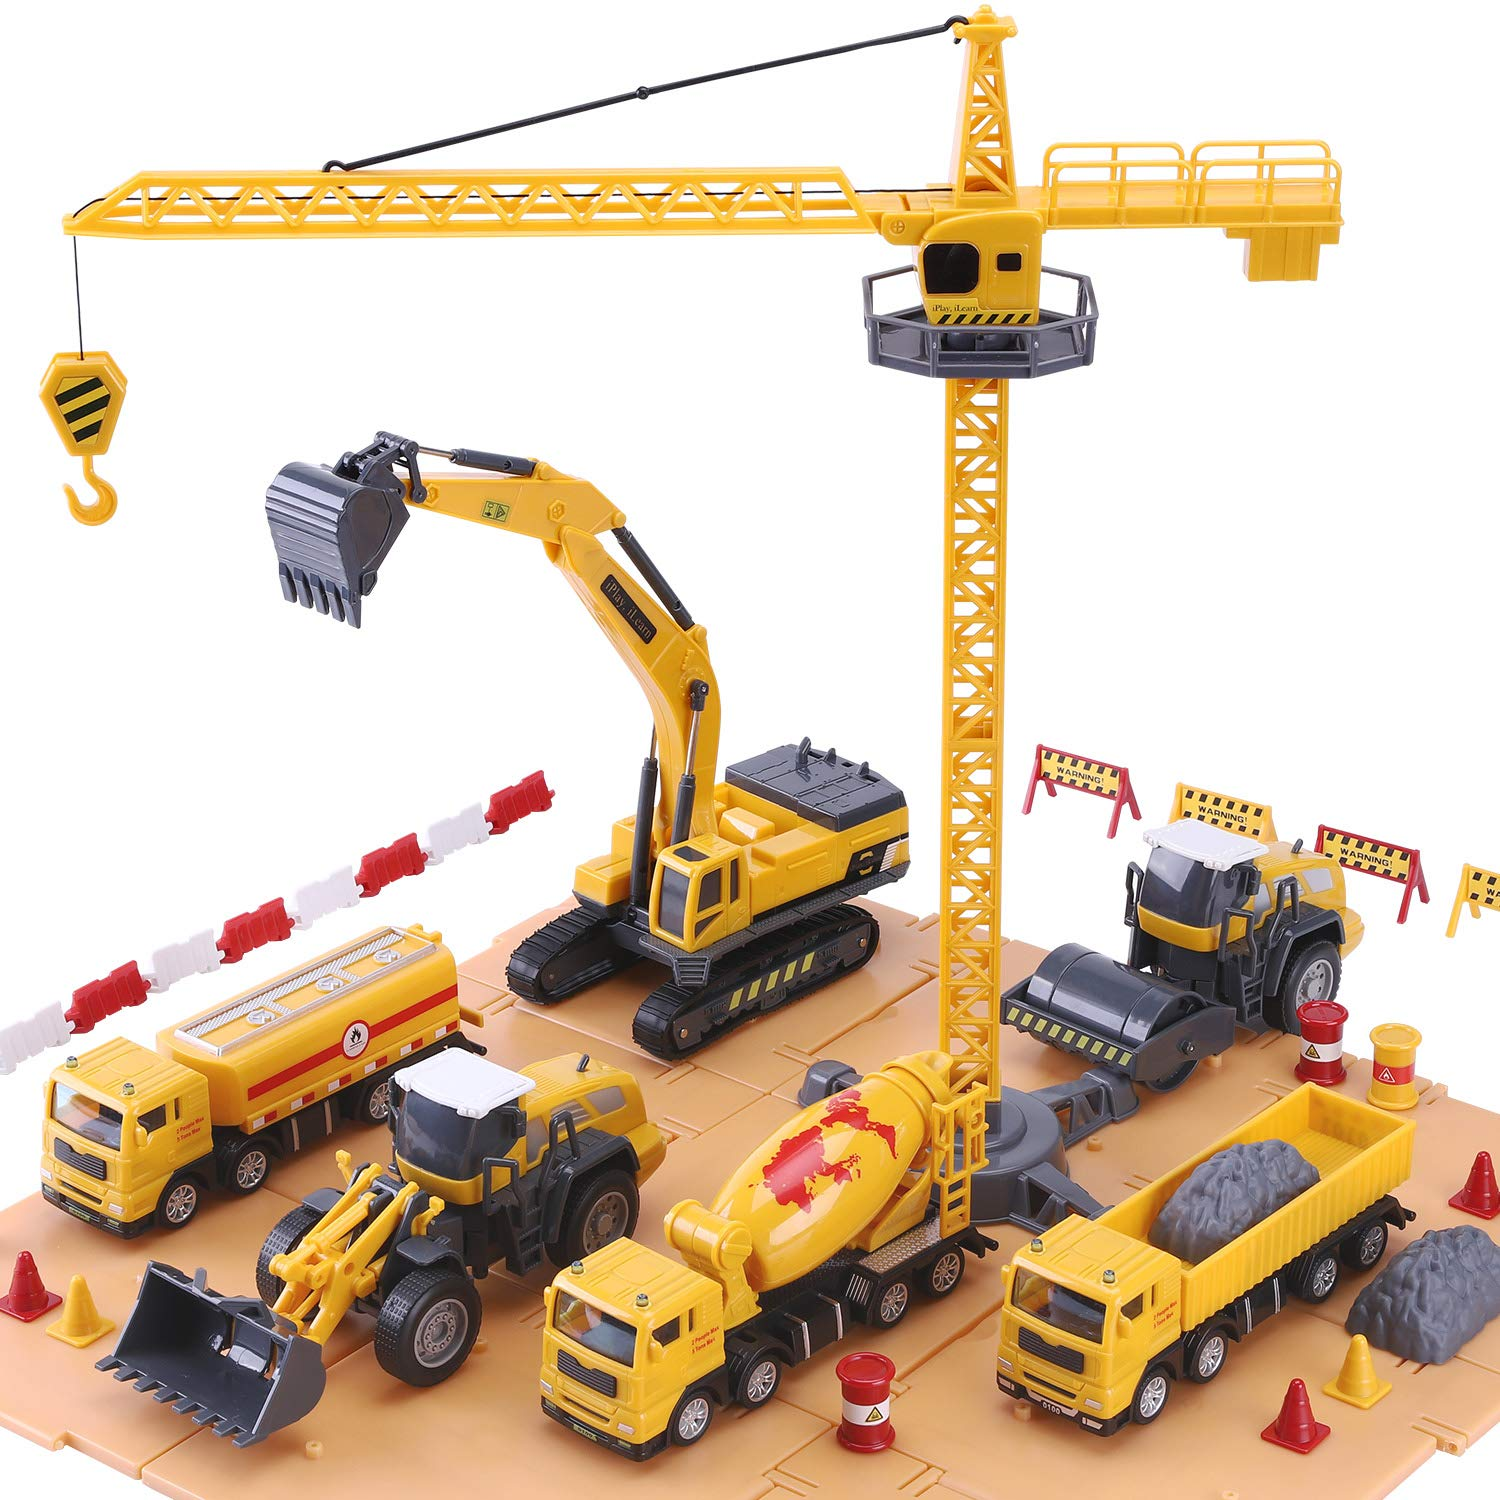 I Hope This Crane Is Just Hiding Other >> Iplay Ilearn Construction Site Vehicles Toy Set Kids Engineering Playset Tractor Digger Crane Dump Trucks Excavator Cement Steamroller For 3